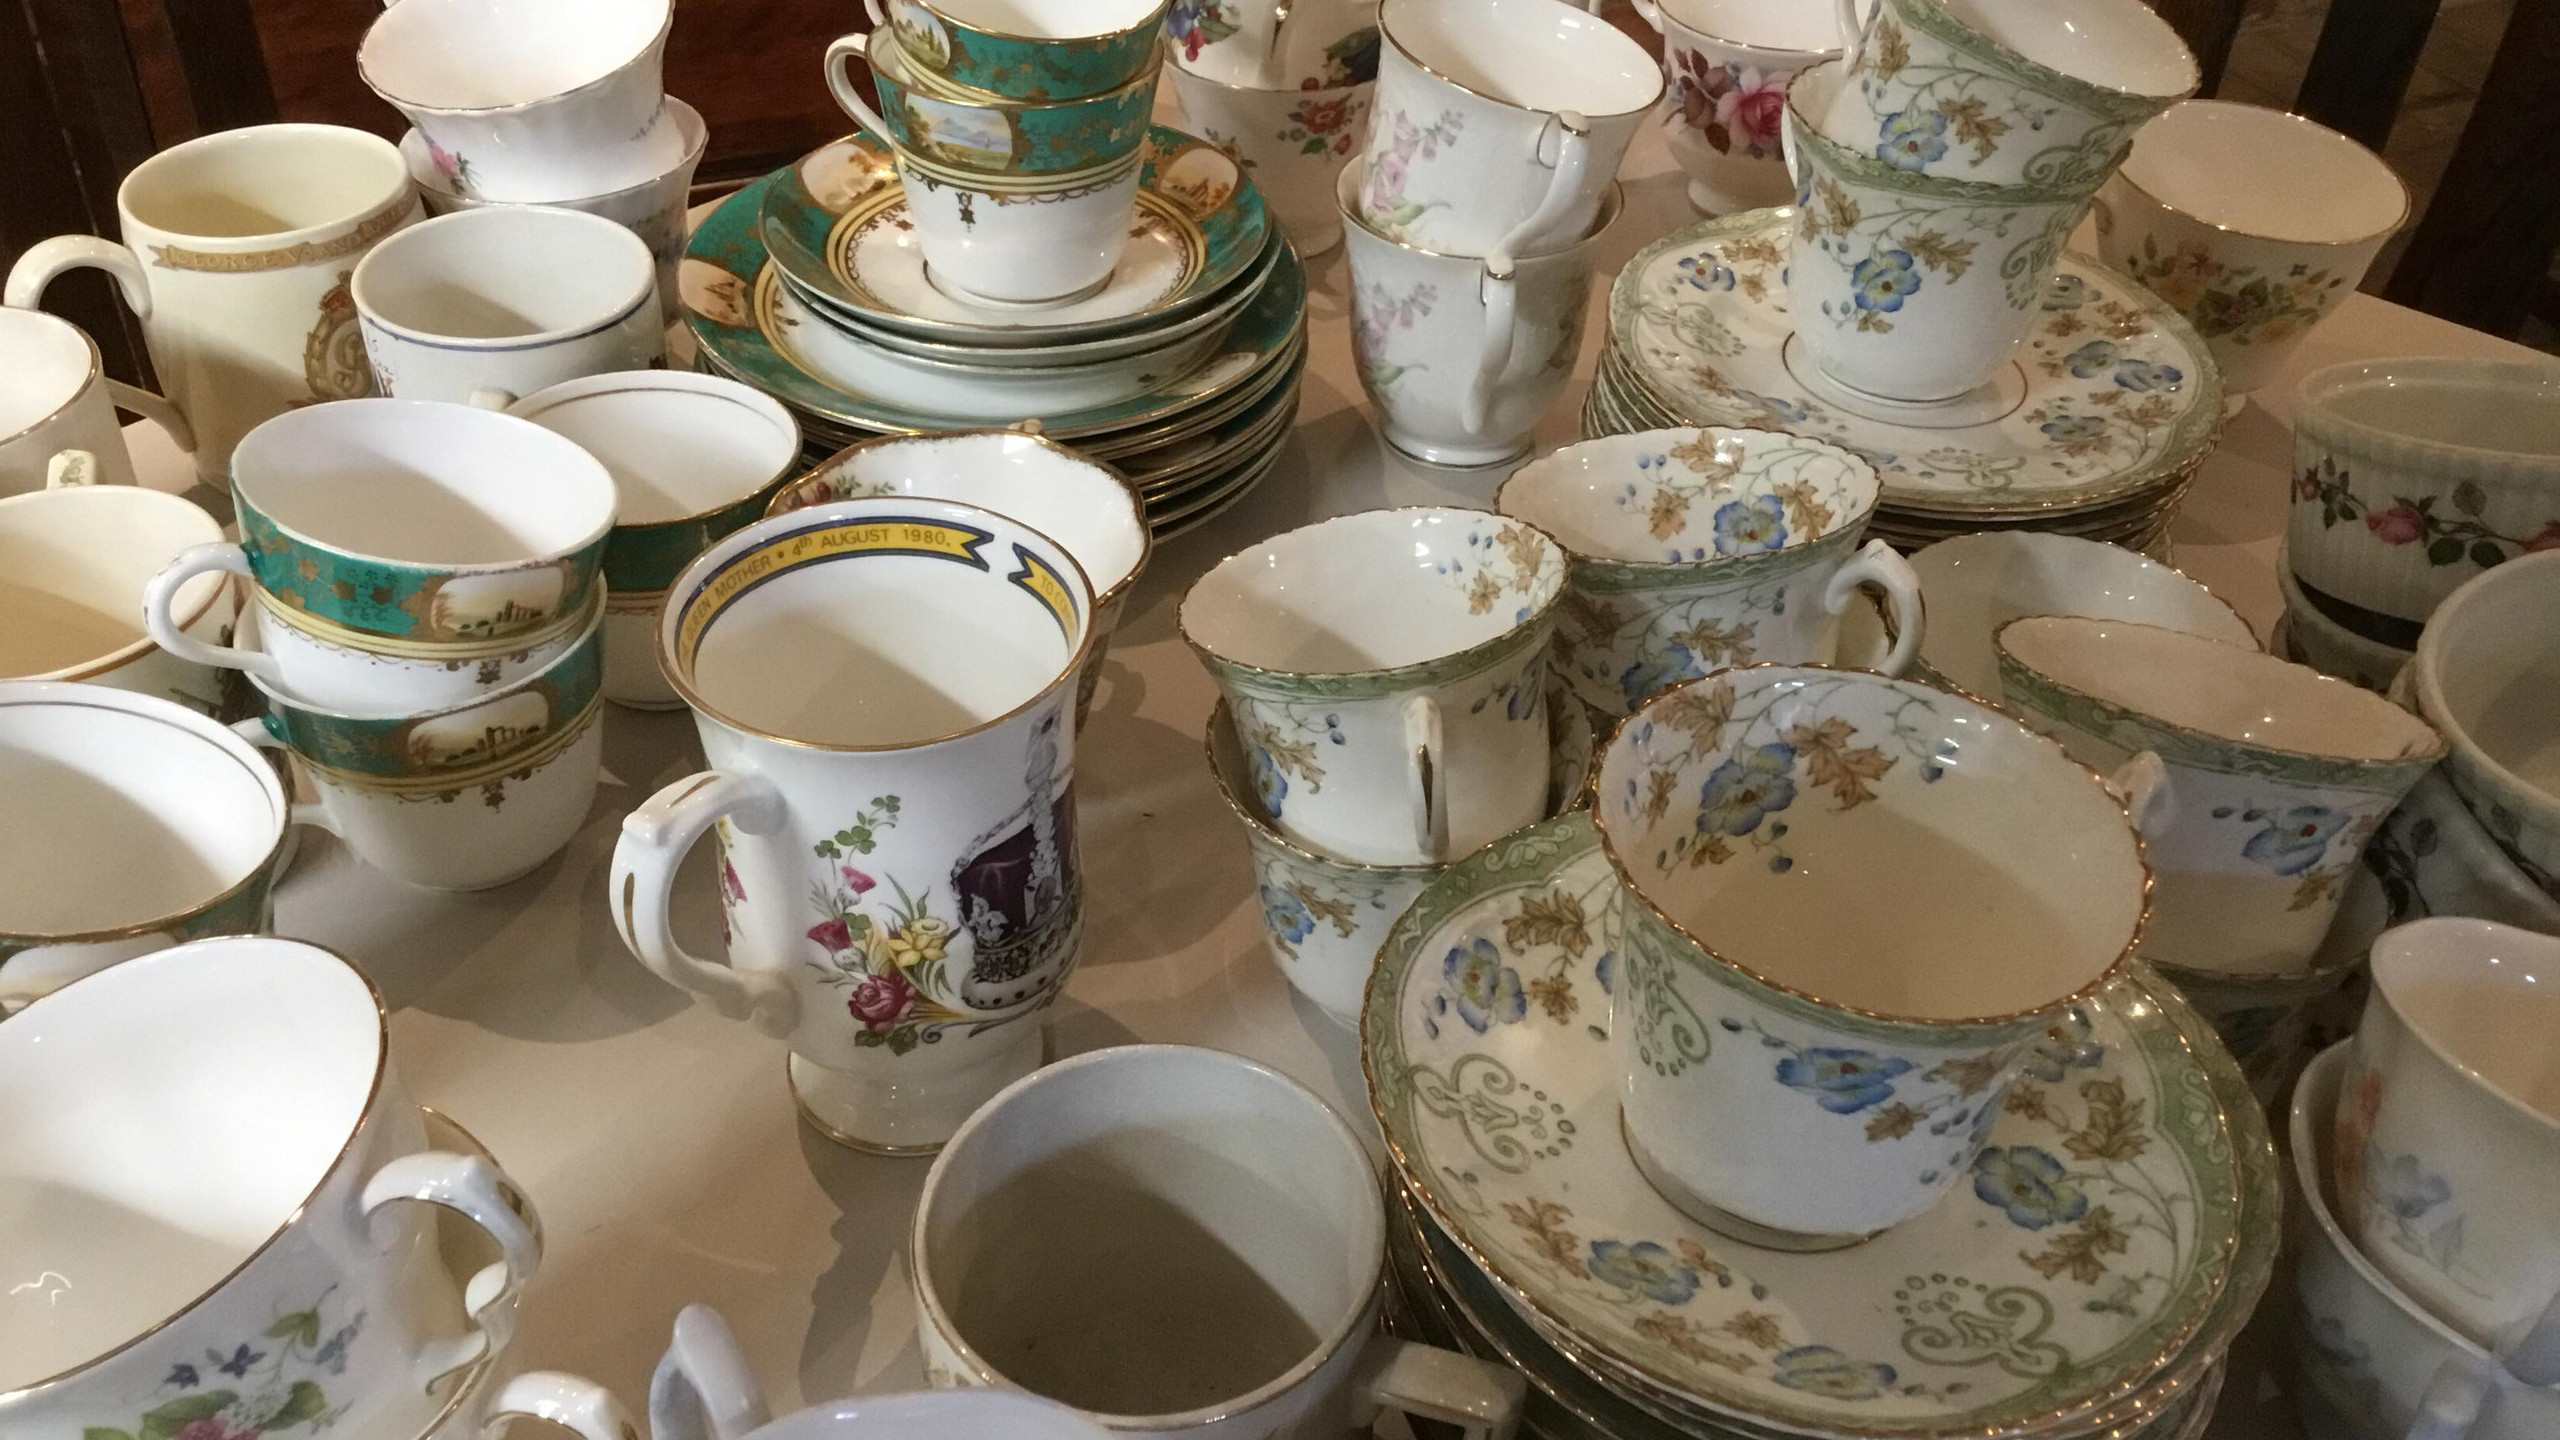 drink and eat from vintage china